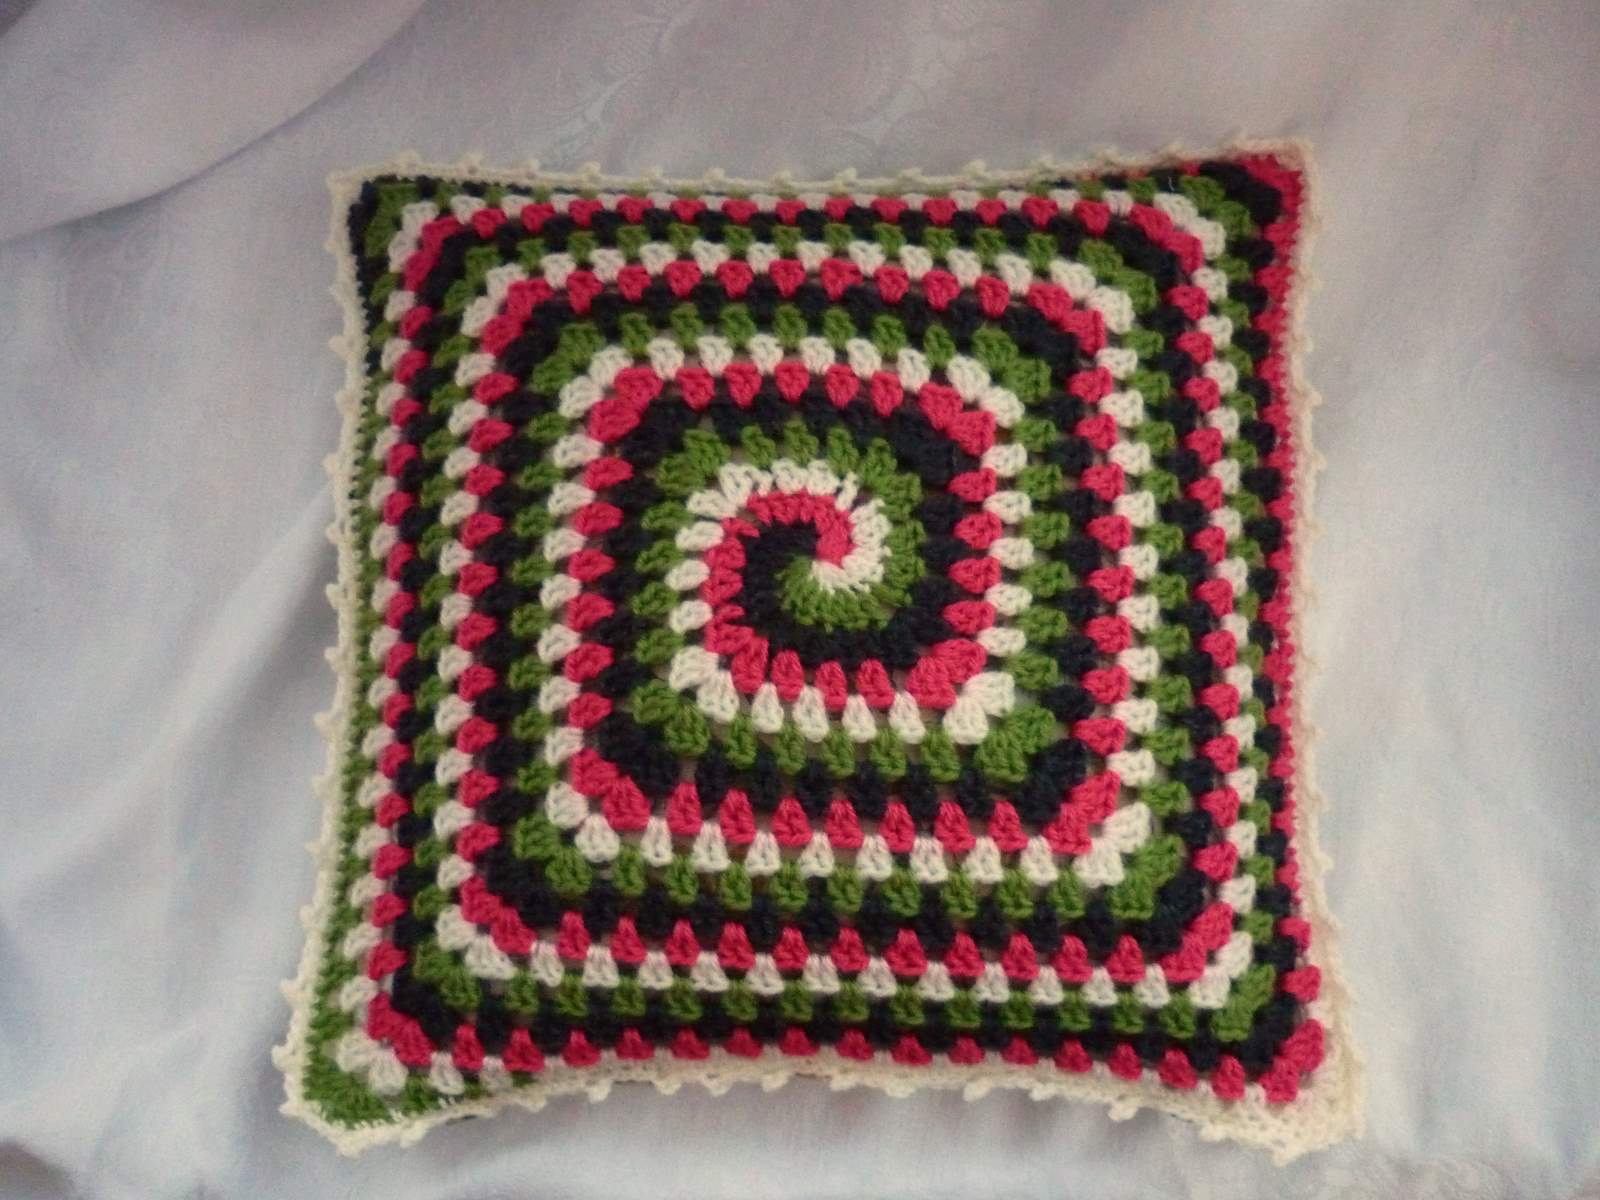 Free Crochet Patterns For Square Pillows : colour in a simple life: Groovy Granny Pillow